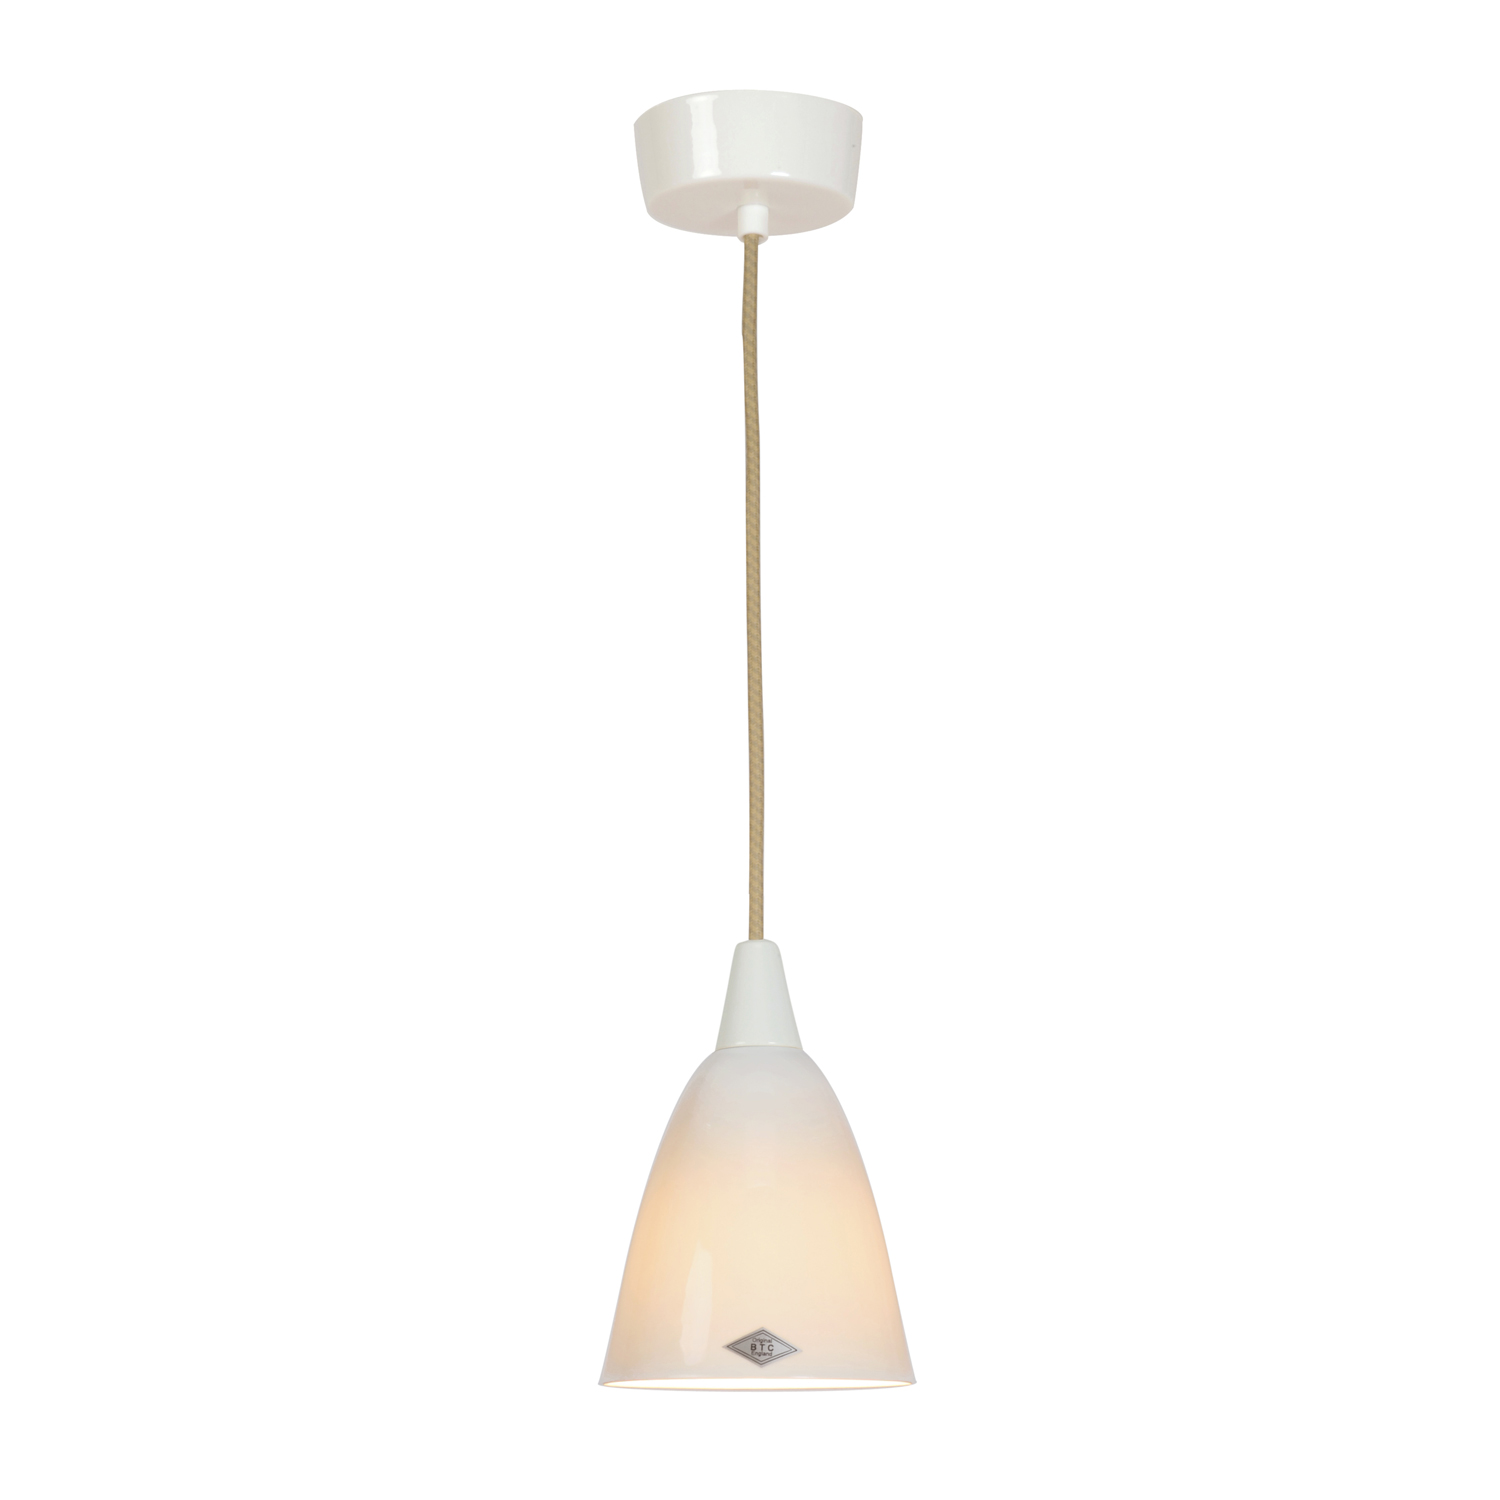 Hector Size 1 Pendant Light, Natural1